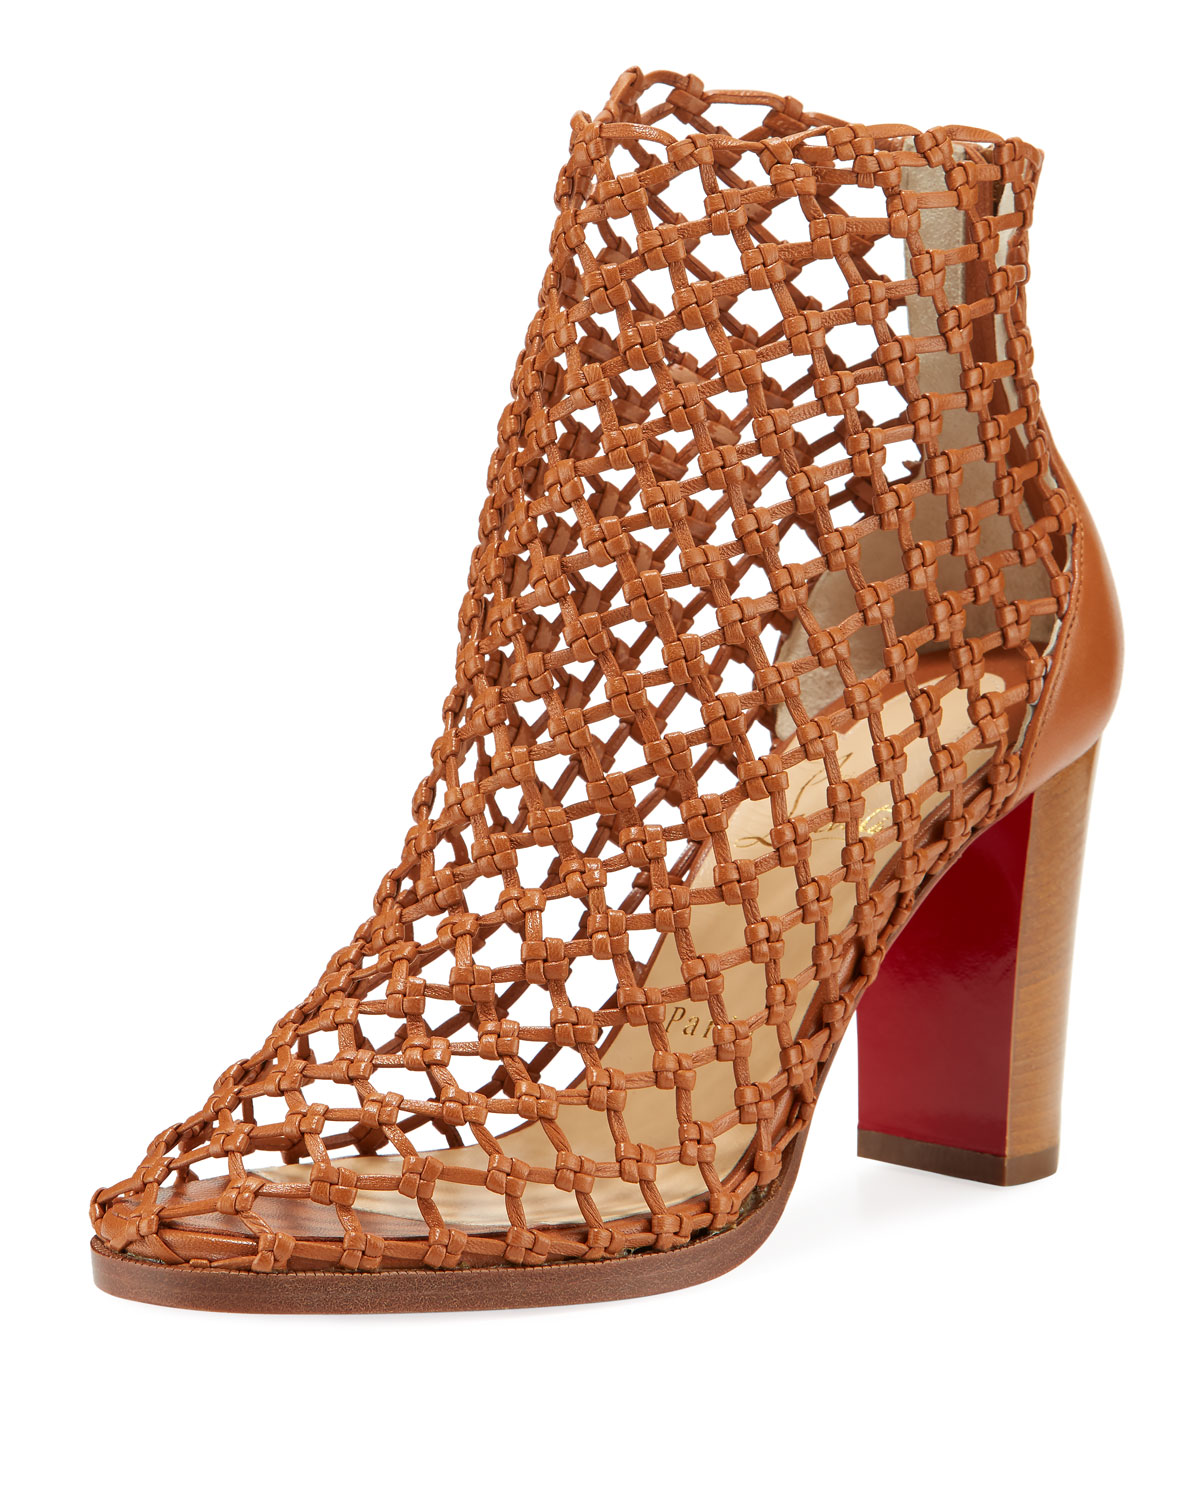 online store 423be 4c293 Porligatica Caged Red Sole Booties